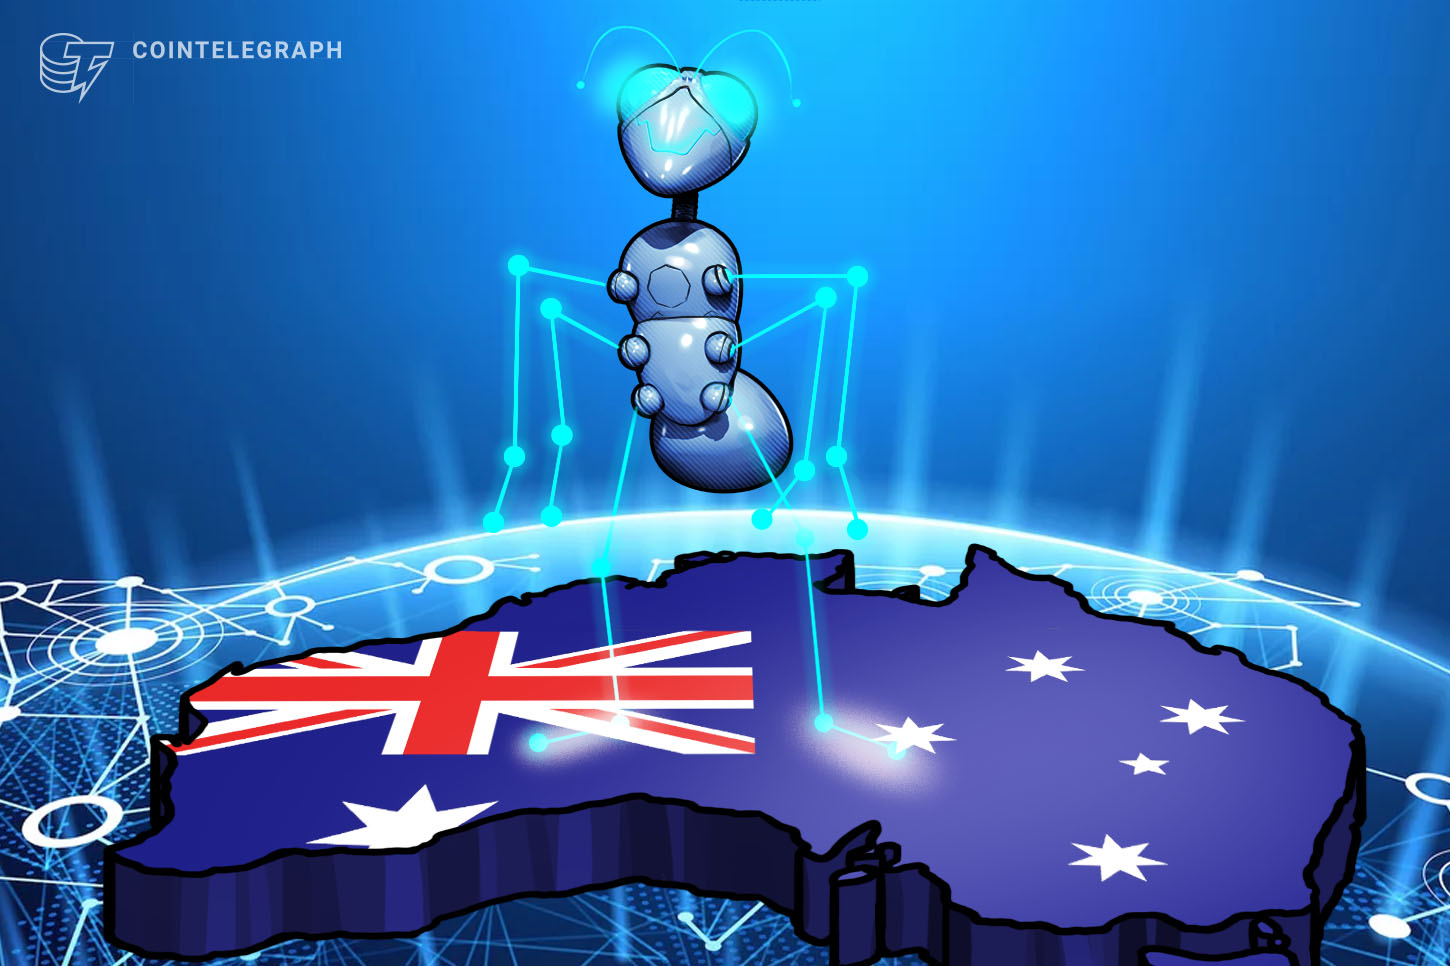 australian-government-embraces-blockchain-with-new-trial-and-public-servants-network